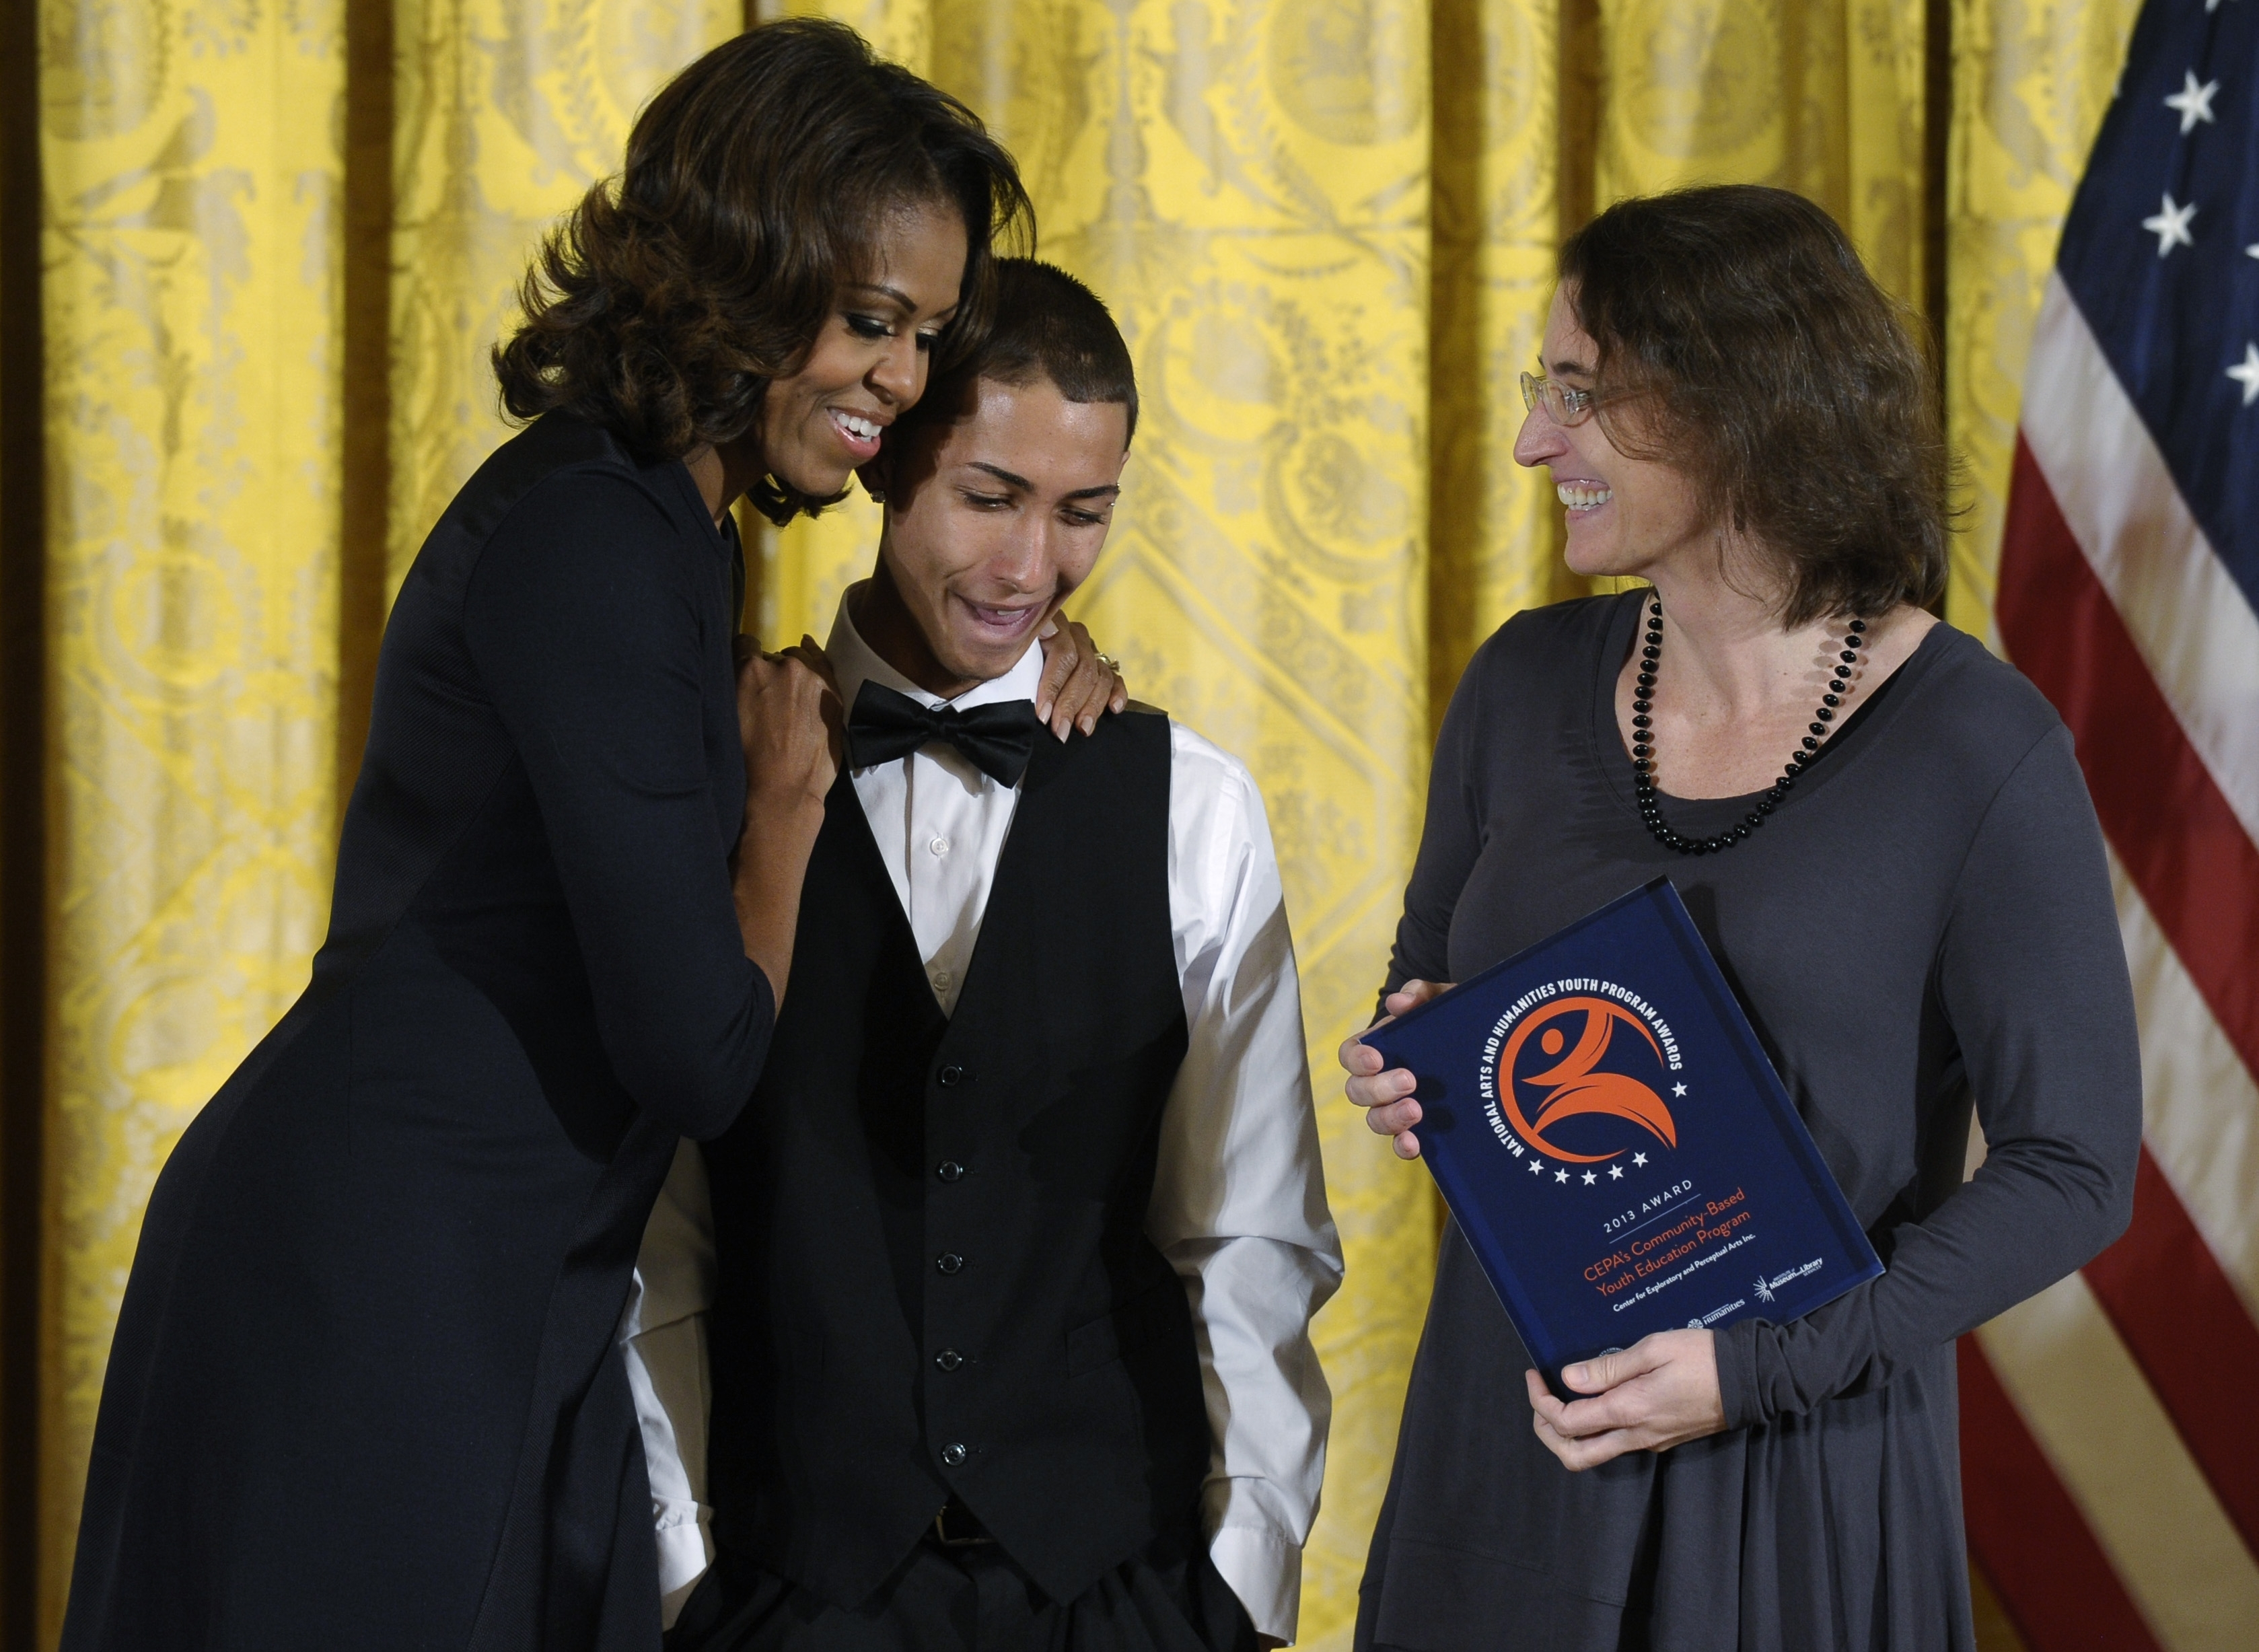 Jose Lagares, 18, center, gets a hug from first lady Michelle Obama, left, as Center for Exploratory and Perceptual Arts, Inc., Education Director Lauren Tent of Buffalo, N.Y., watches at right, at the White House in Washington, Friday, Nov. 22, 2013, where Lagares and Tent were presented with the Presidentís Committee on the Arts and the Humanities (PCAH) National Arts and Humanities Youth Program Awards. (AP Photo/Susan Walsh)